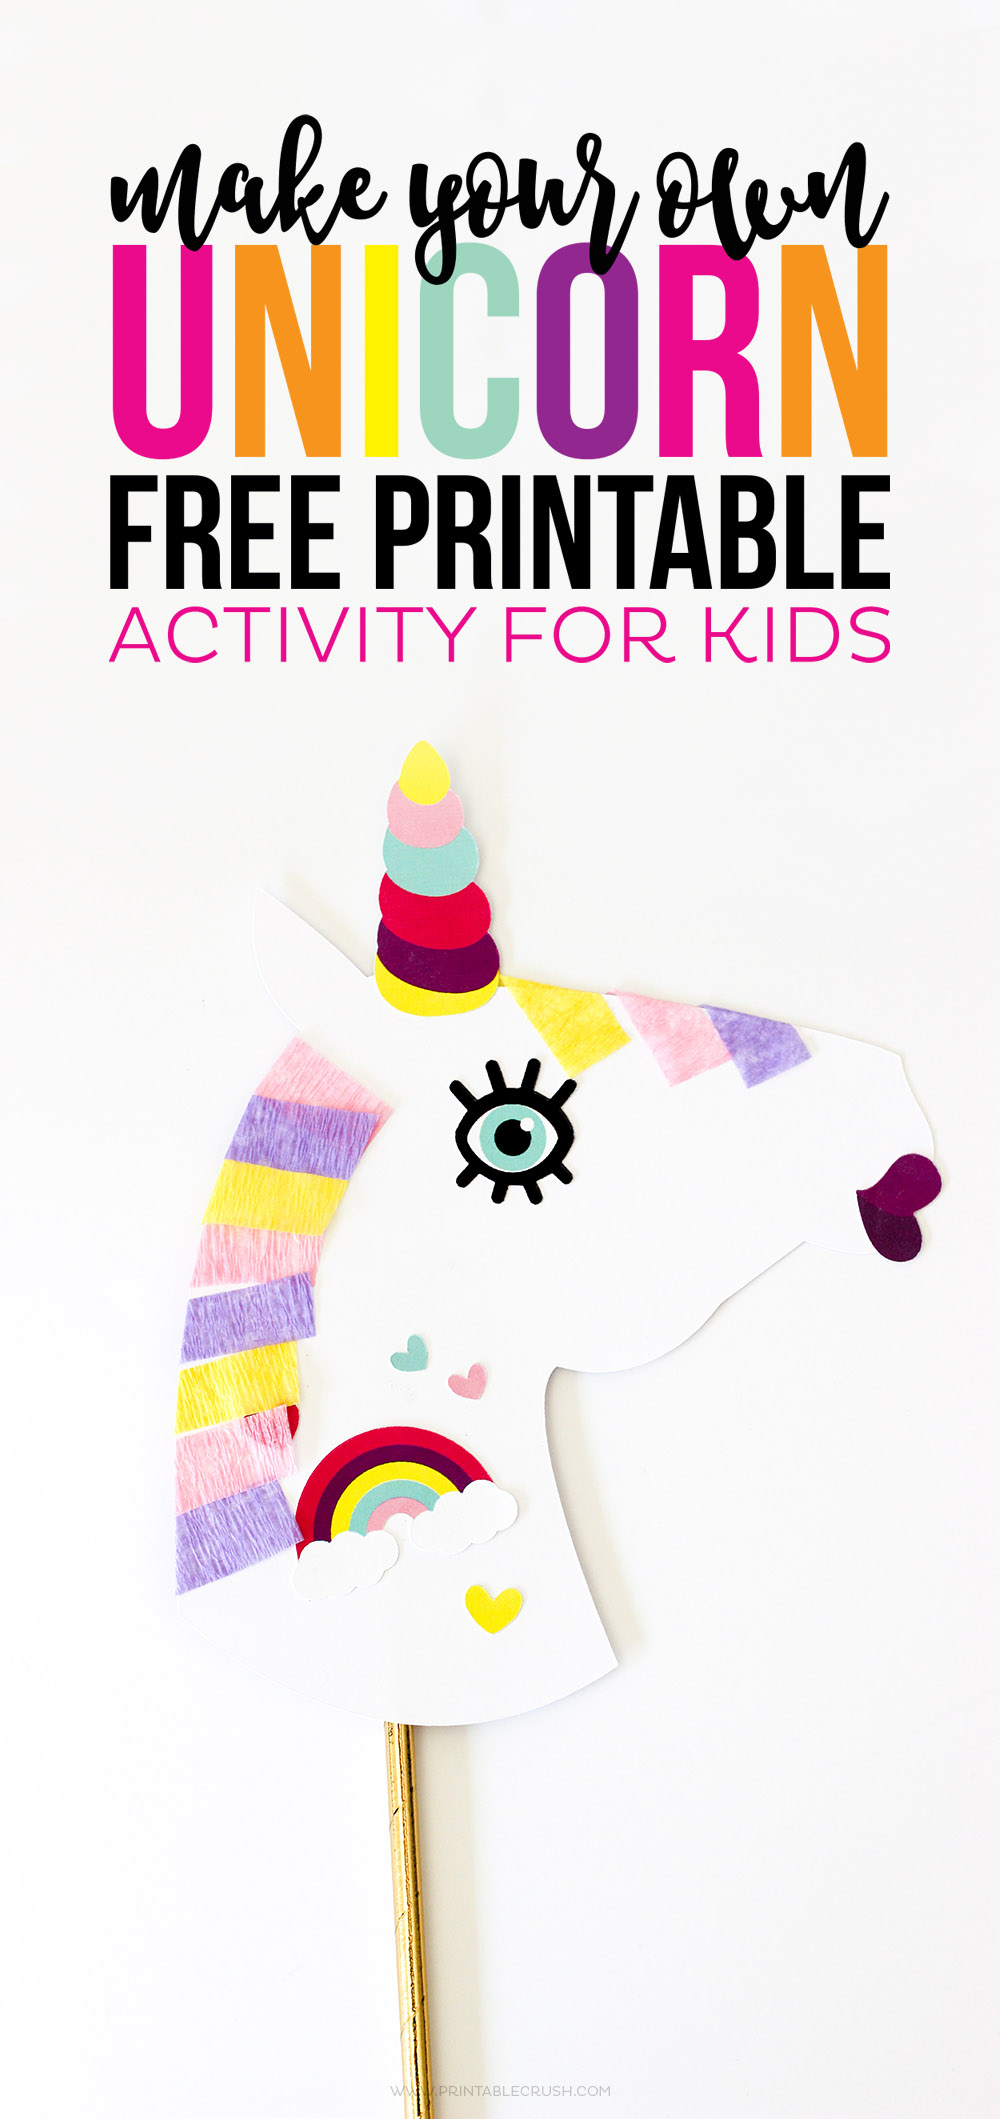 Make Your Own Unicorn FREE Printable Activity